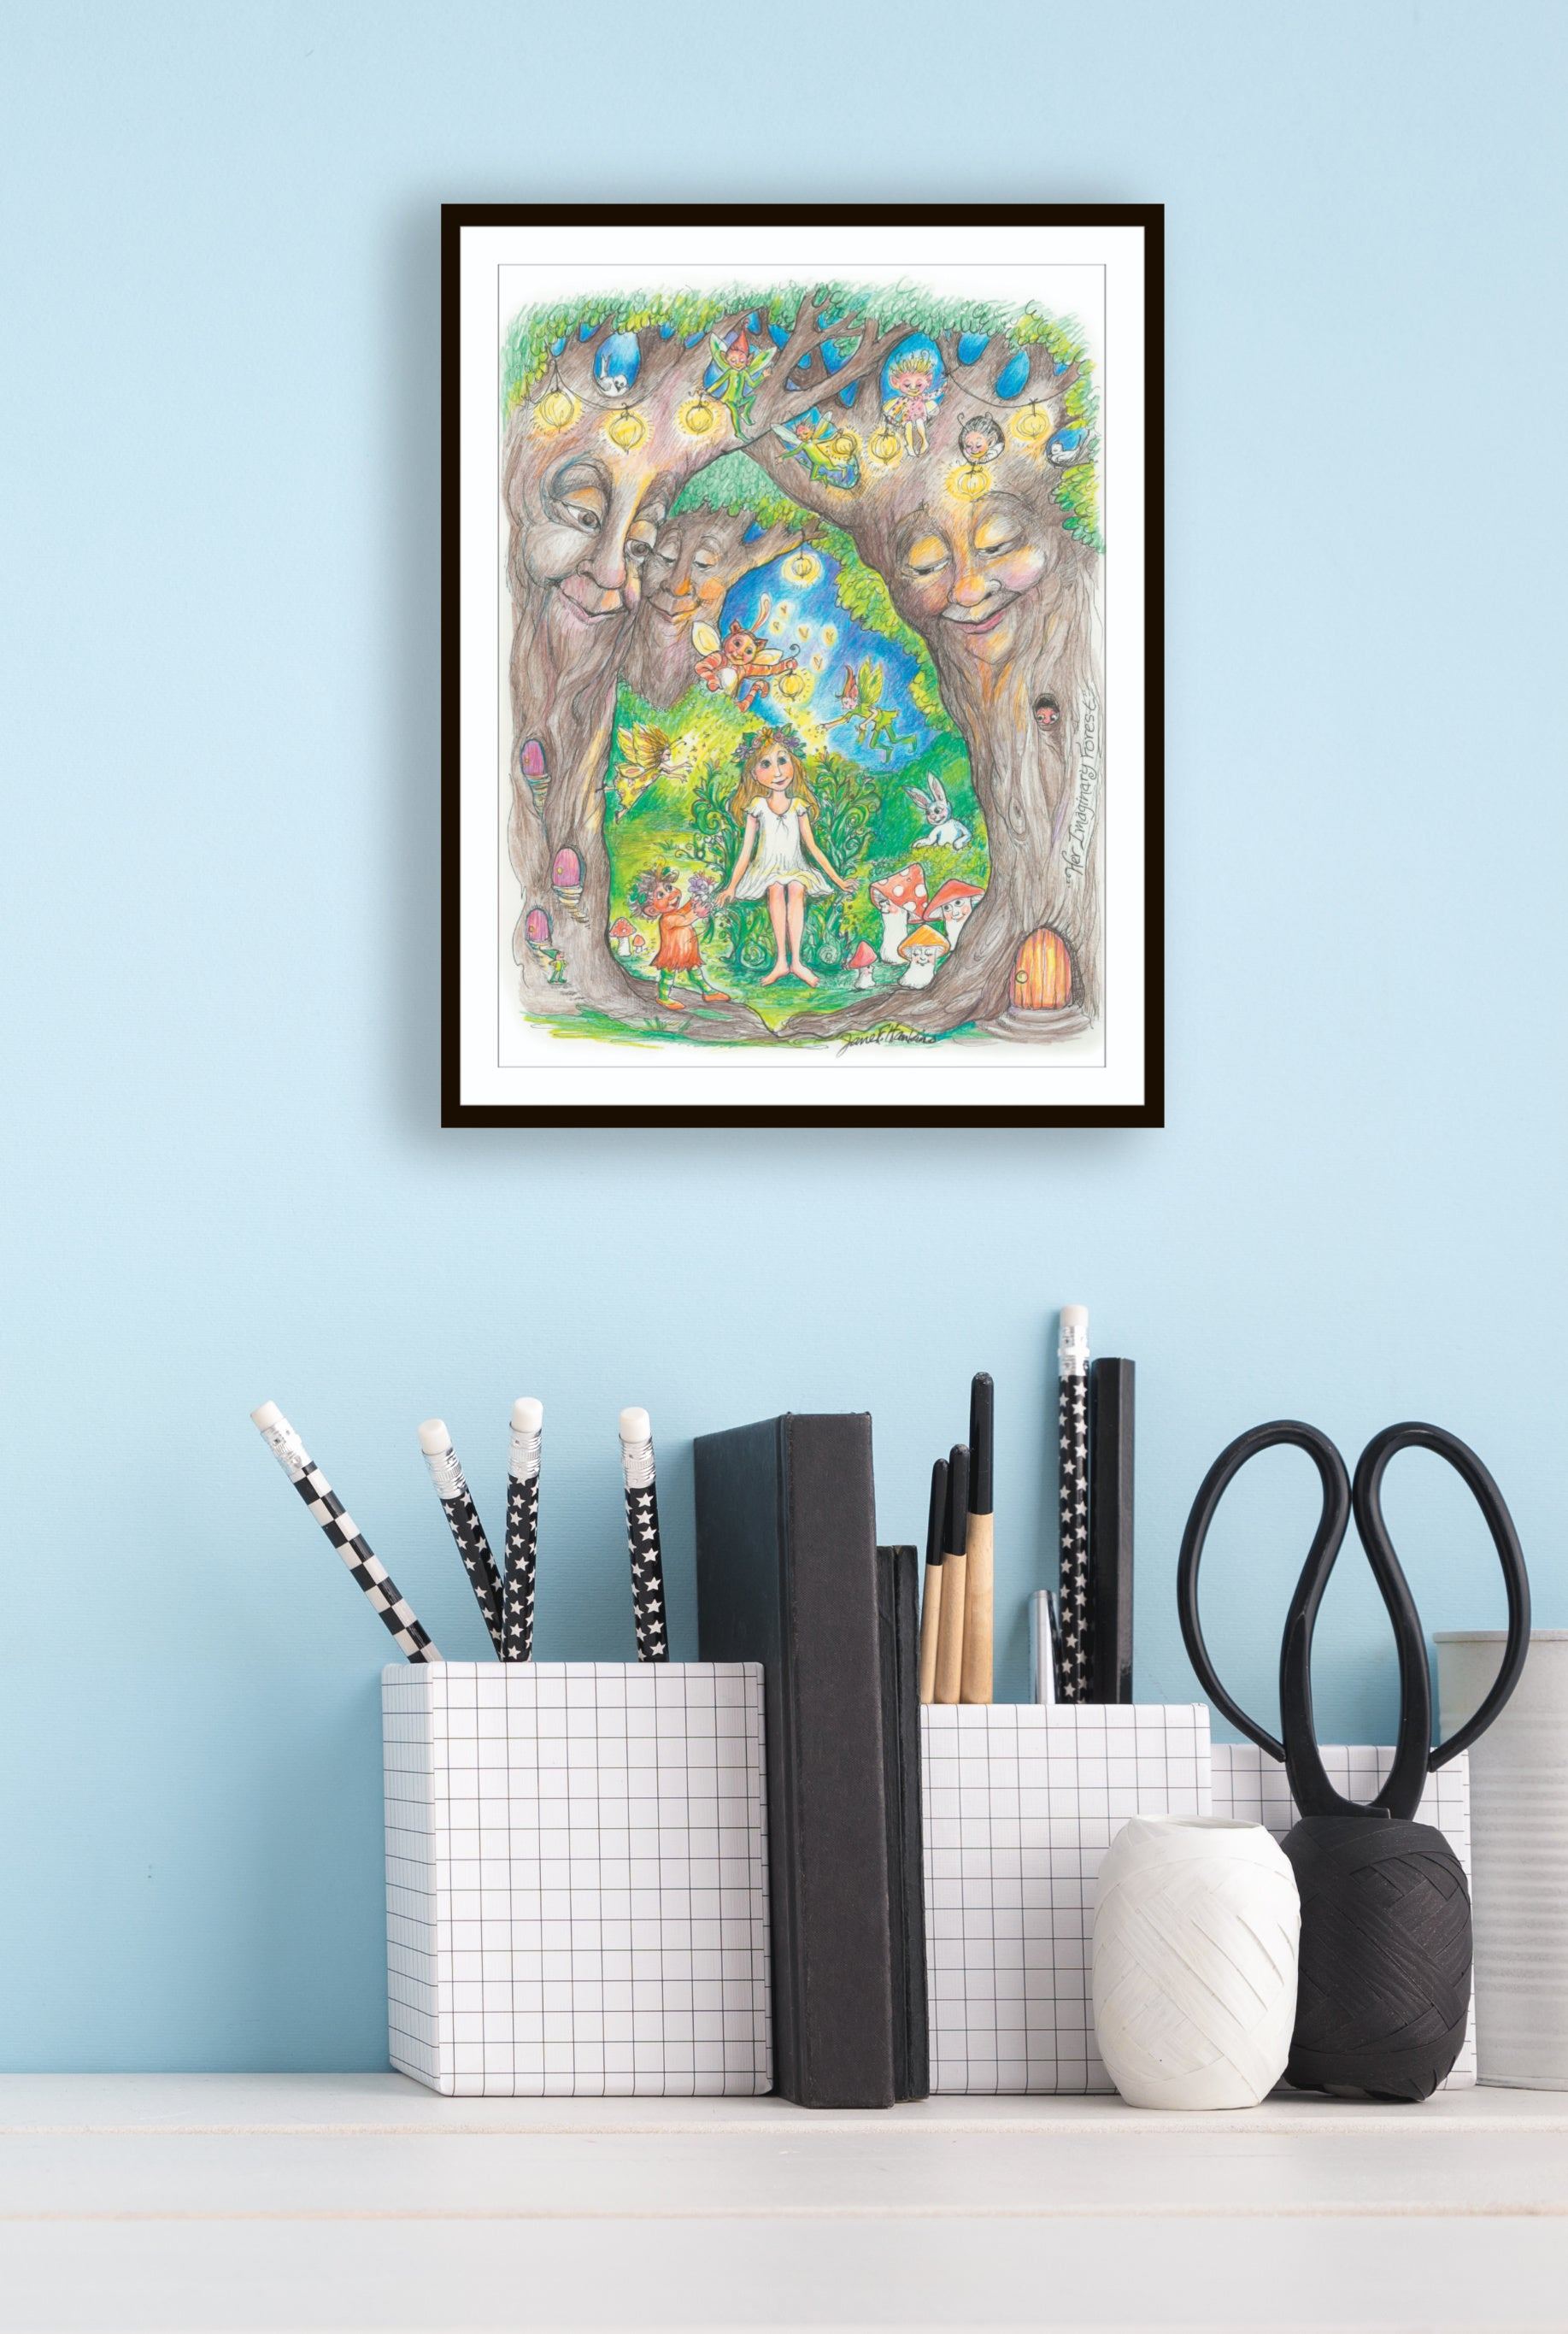 Print of Her Imaginary Forest By Jane F. Hankins